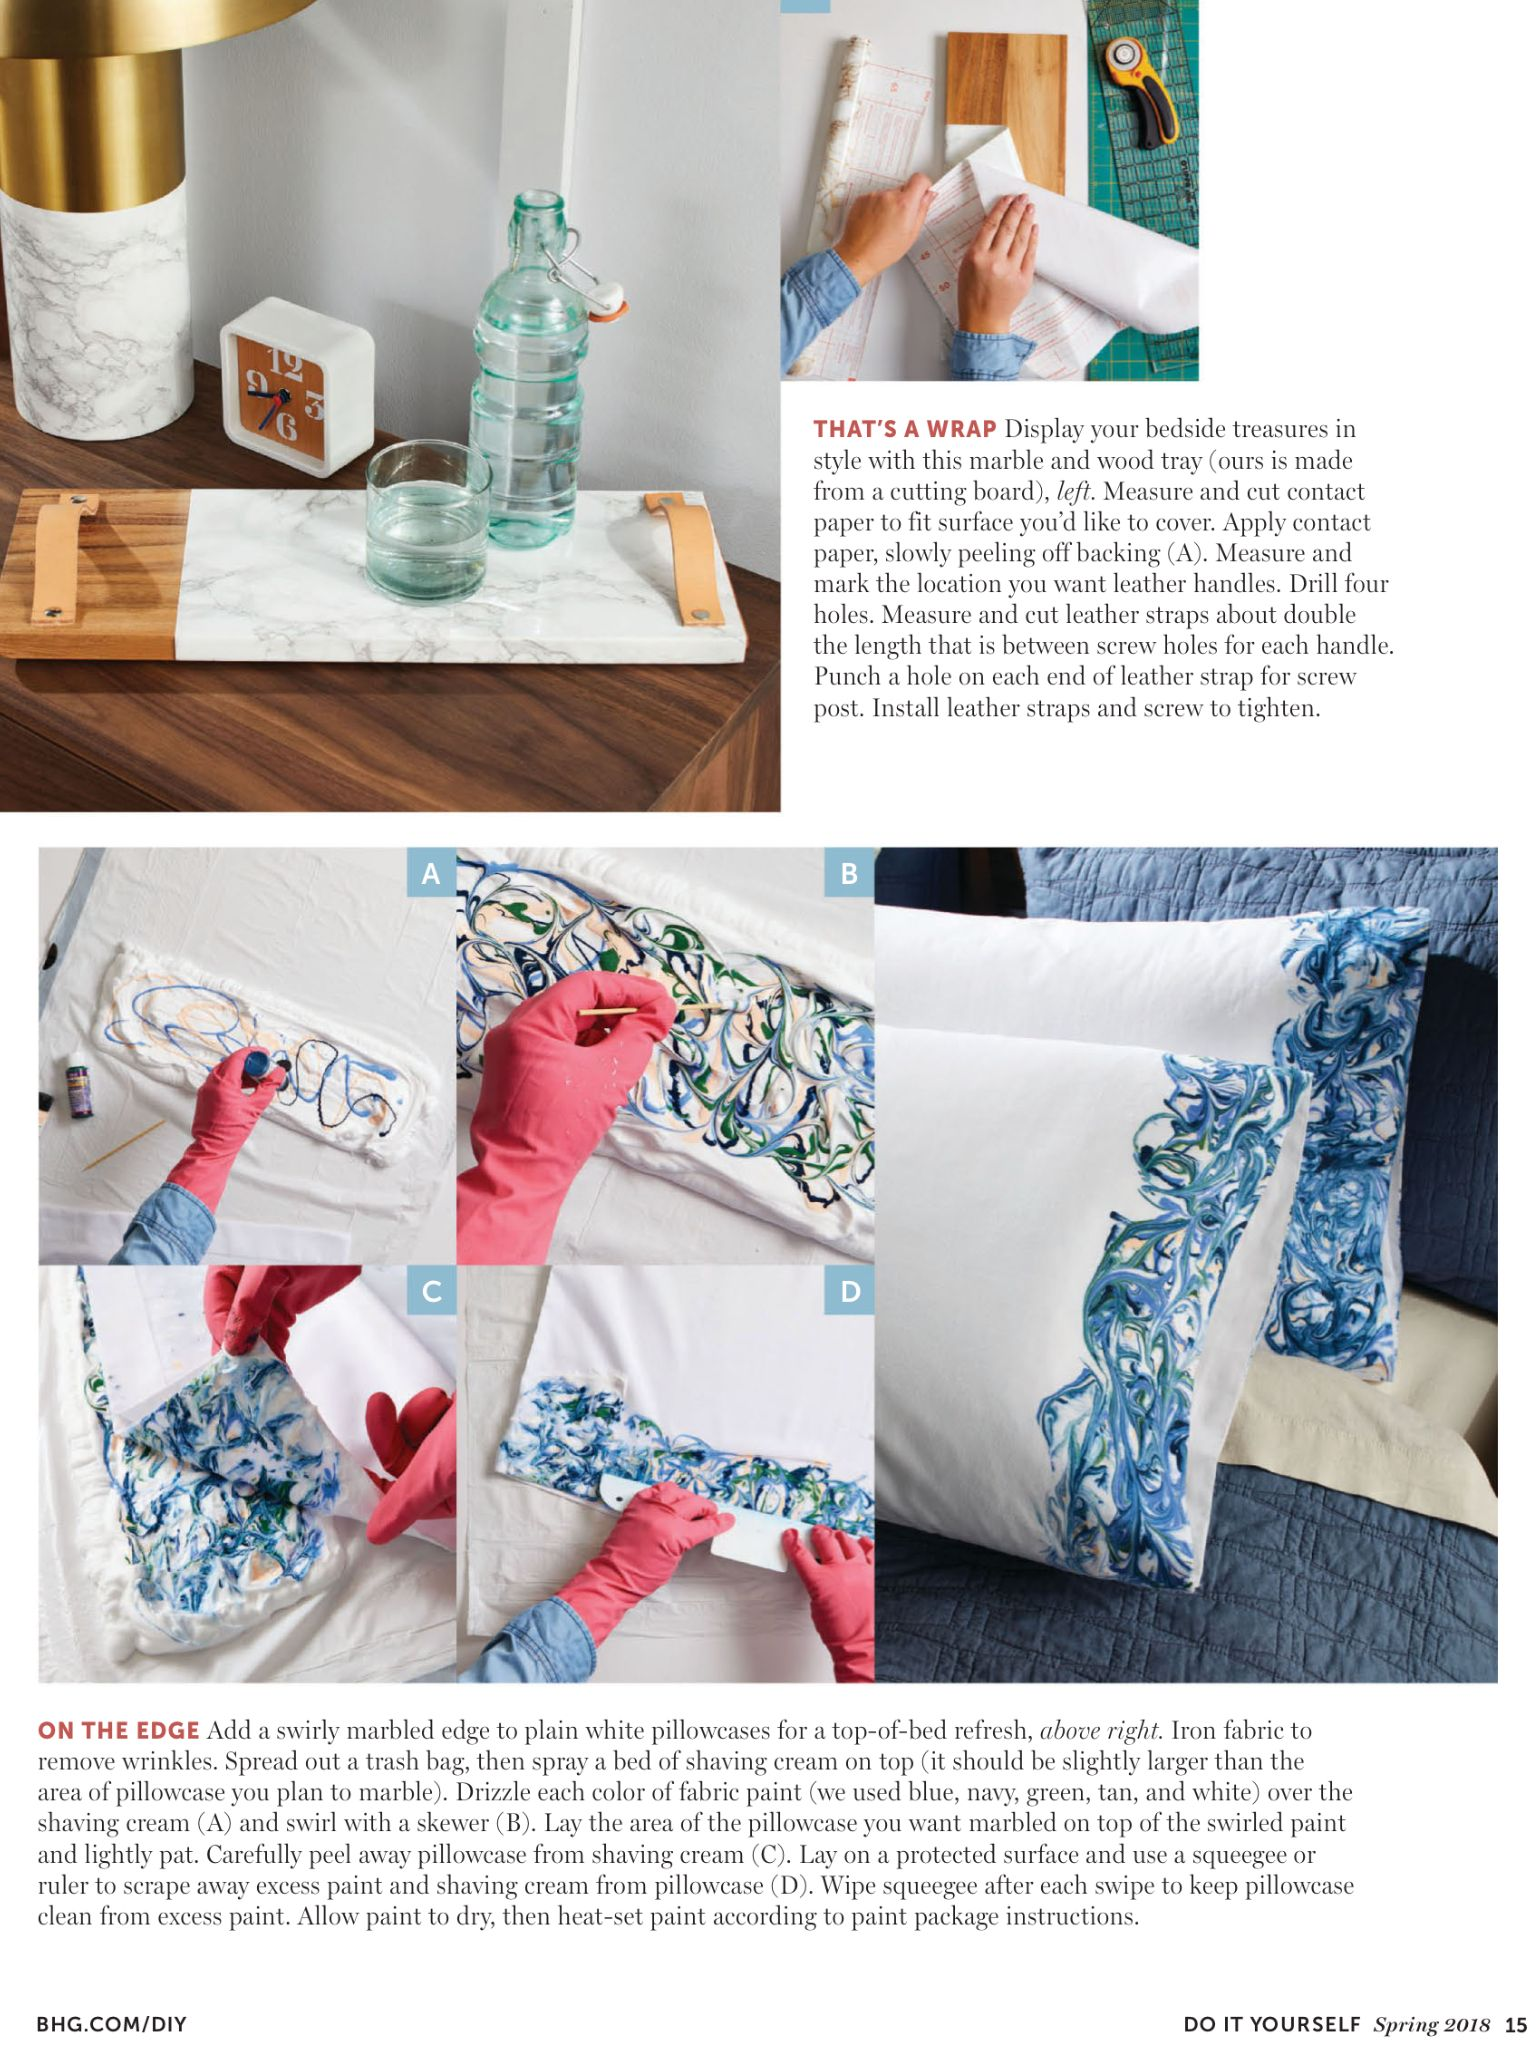 Marbling from do it yourself magazine spring 2018 read it on the marbling from do it yourself magazine spring 2018 read it solutioingenieria Gallery